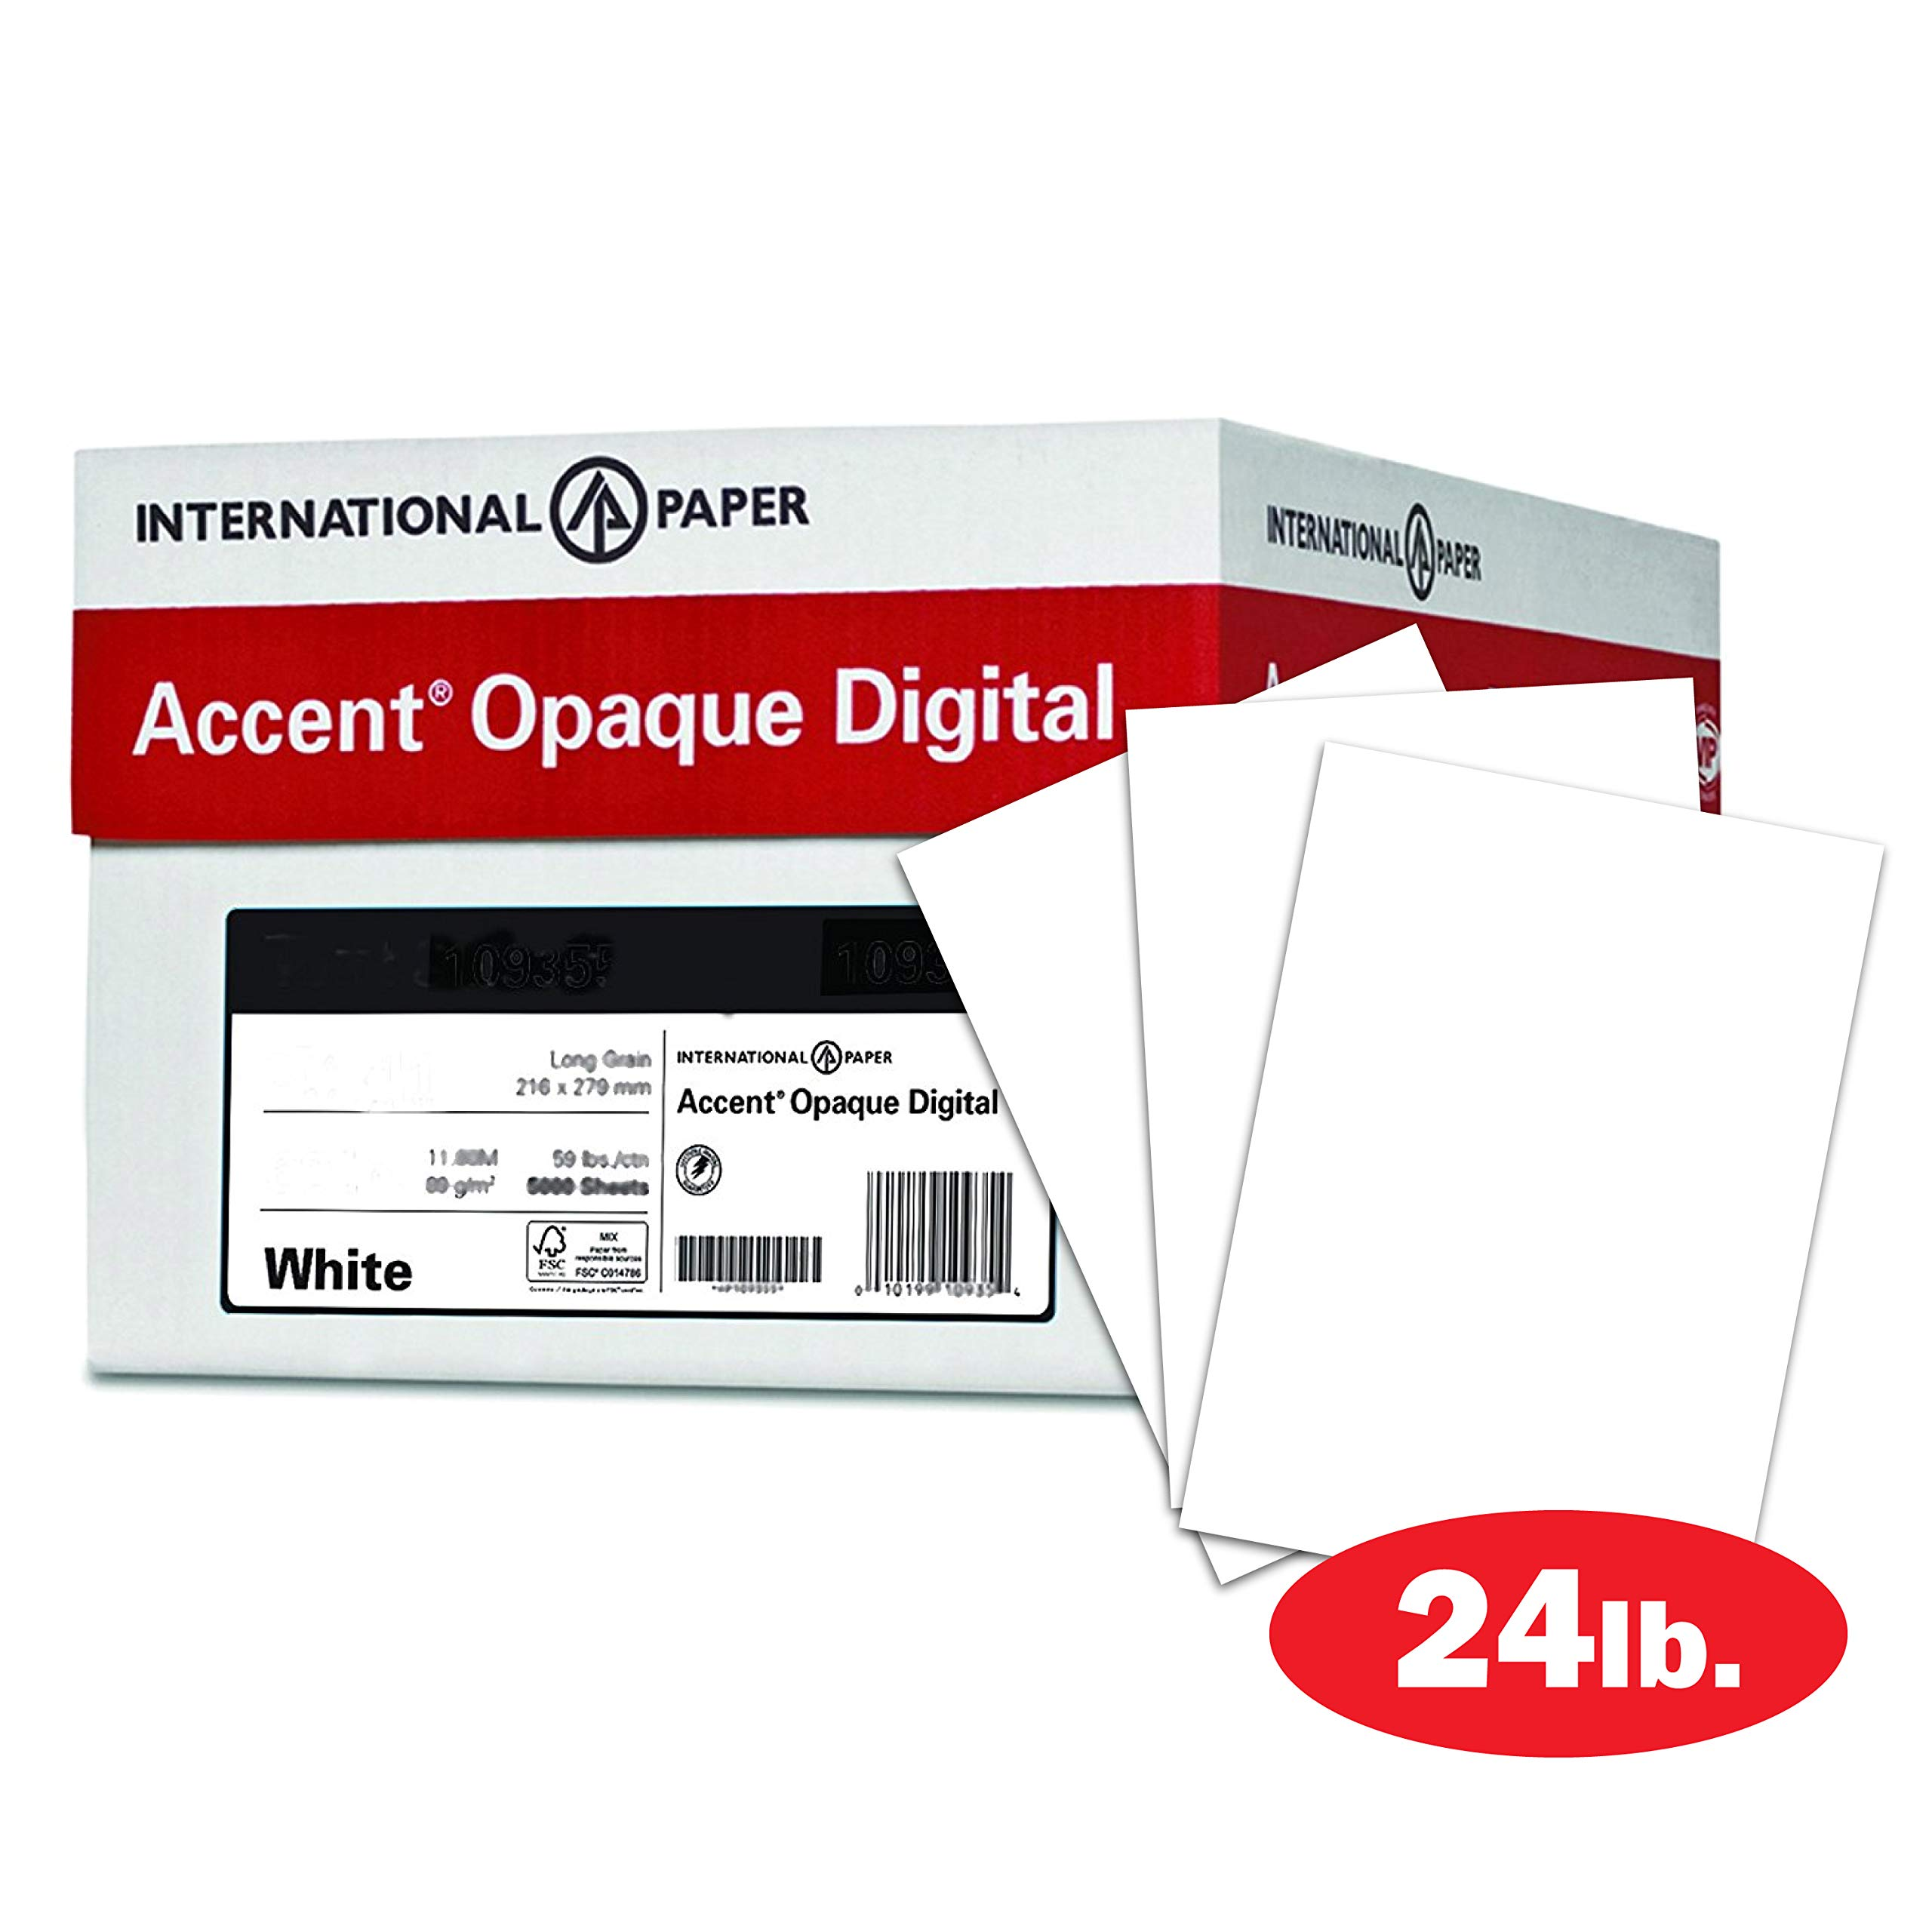 Accent Opaque 24lb Warm White Paper, 60lb Paper Text, 89gsm, 8.5x 11, 97 Bright, 10 Reams / 5,000 Sheets - Smooth, Text Heavy Paper